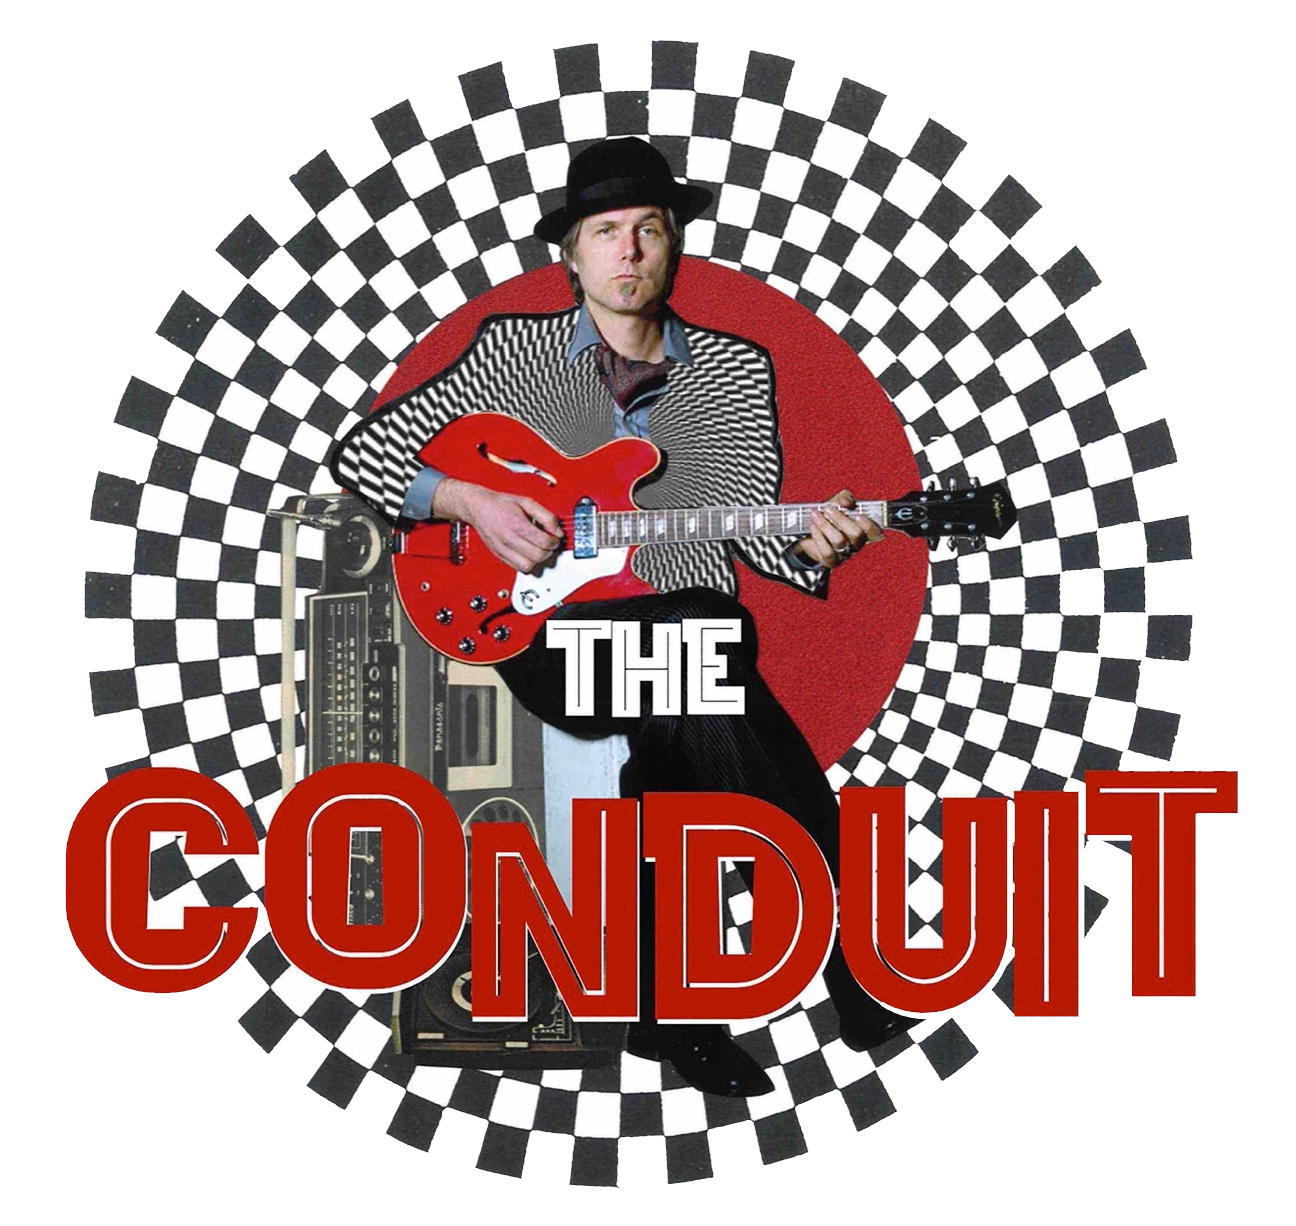 Learn the truth about the music business on The Conduit!